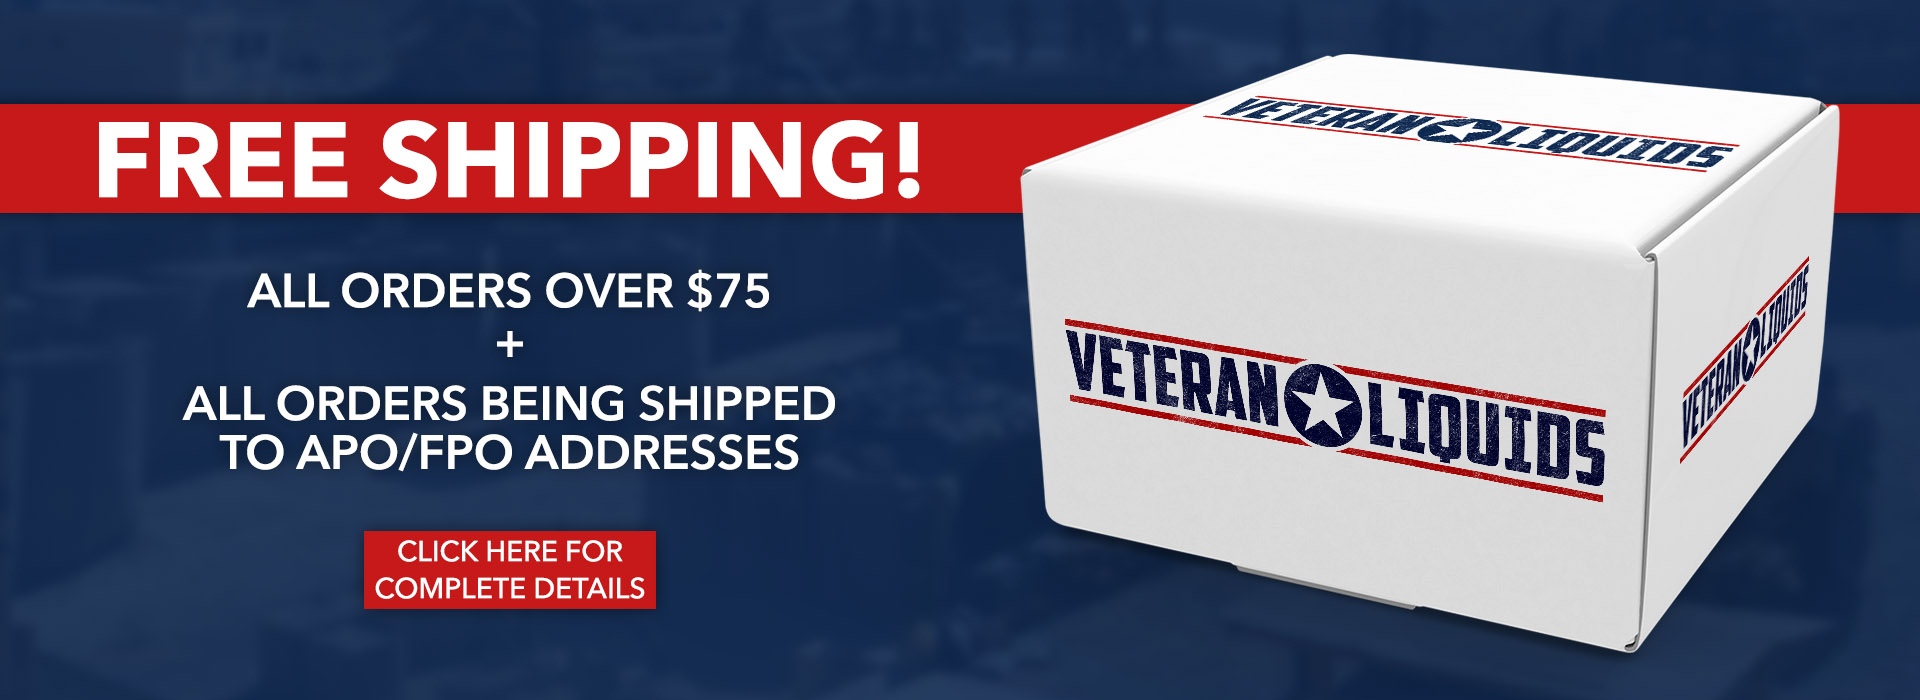 Free Shipping - All orders over $75